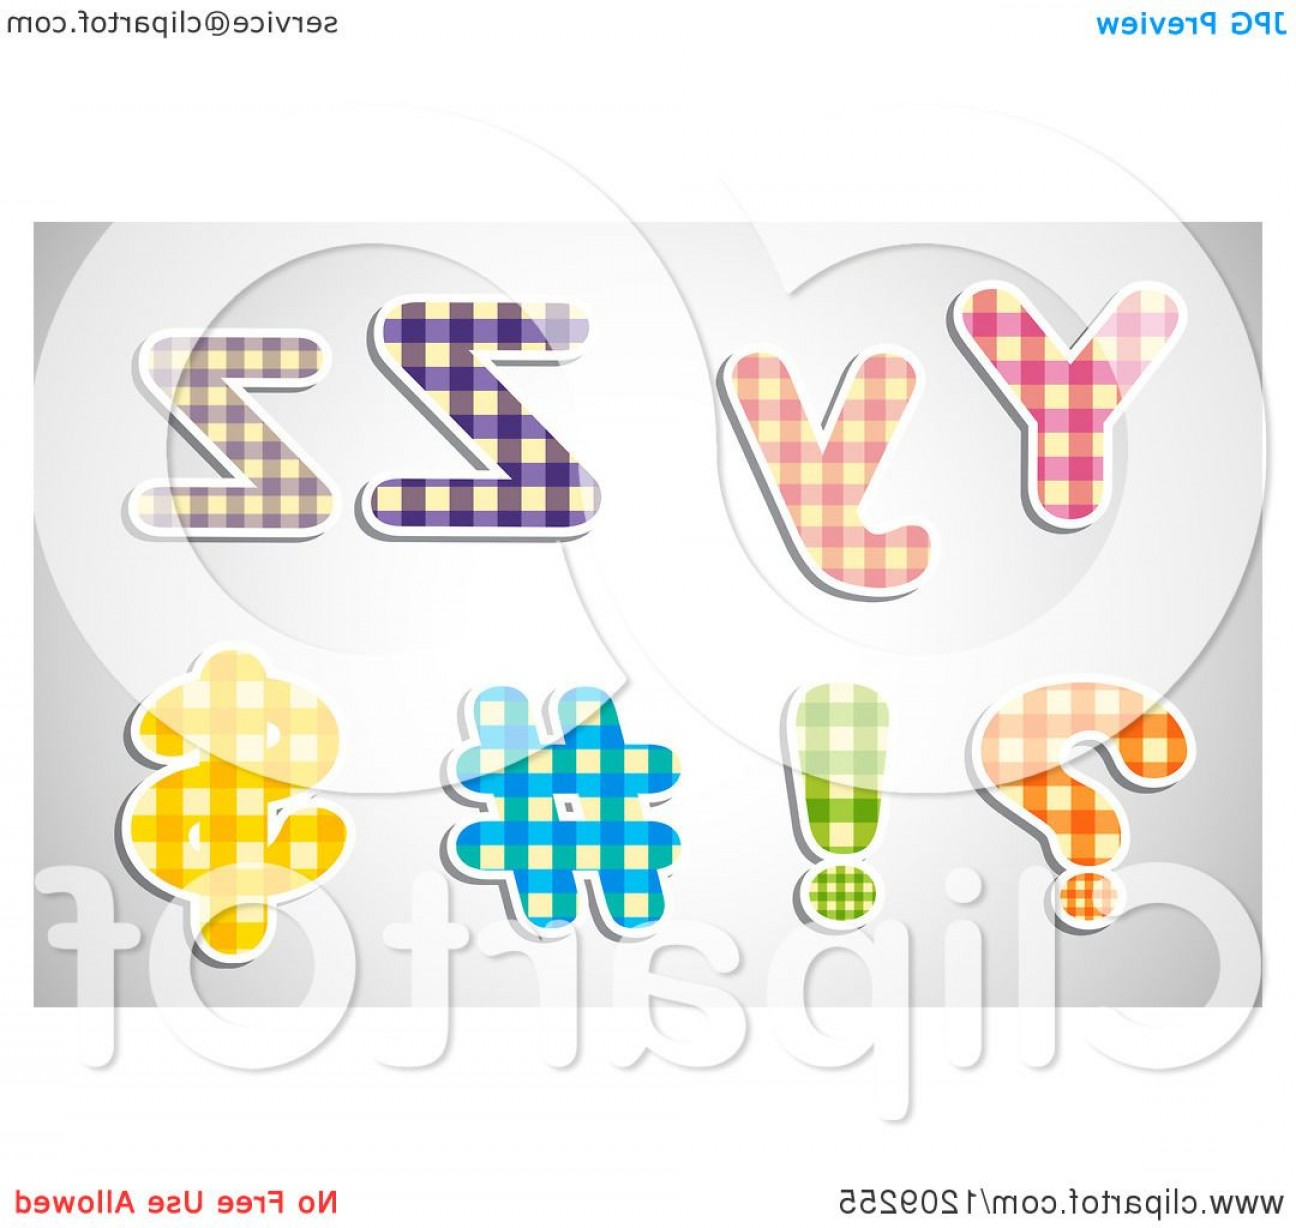 Letters Symbols Vector Art: Plaid Patterned Lowercase And Capital Letters Y And Z With Symbols